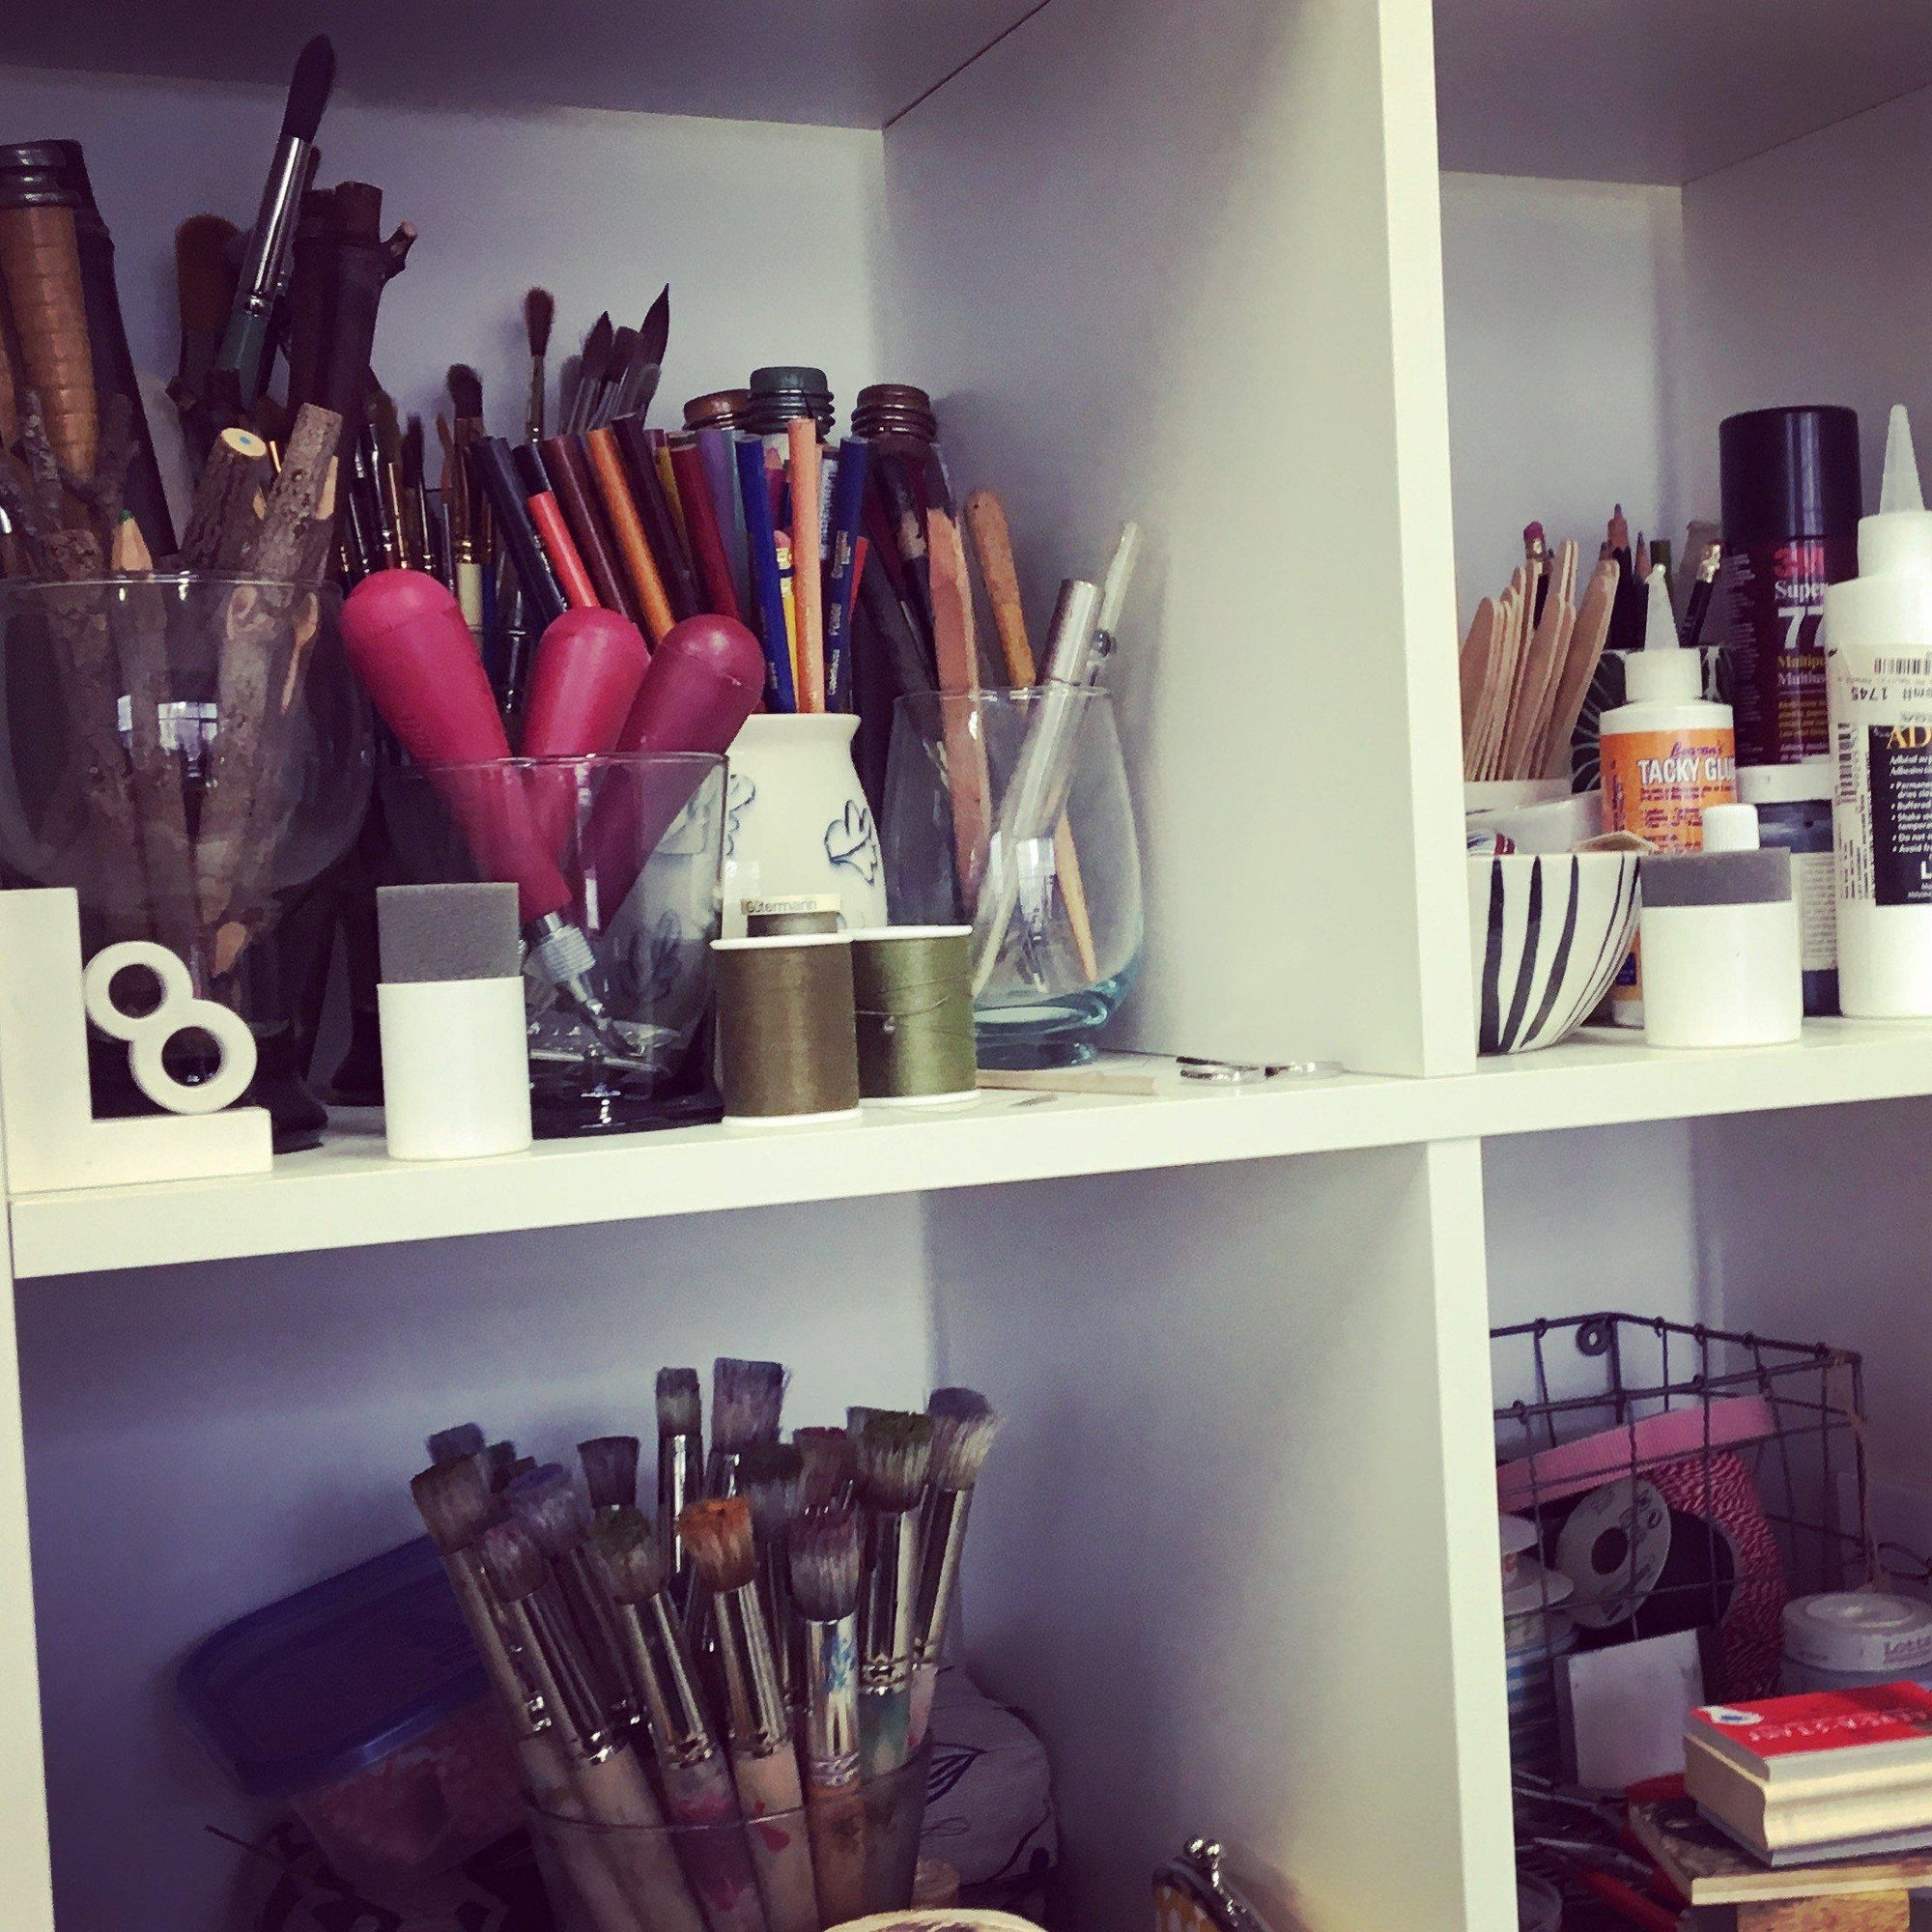 Sweet Paul Makerie 2017: Making & Creating in Brooklyn